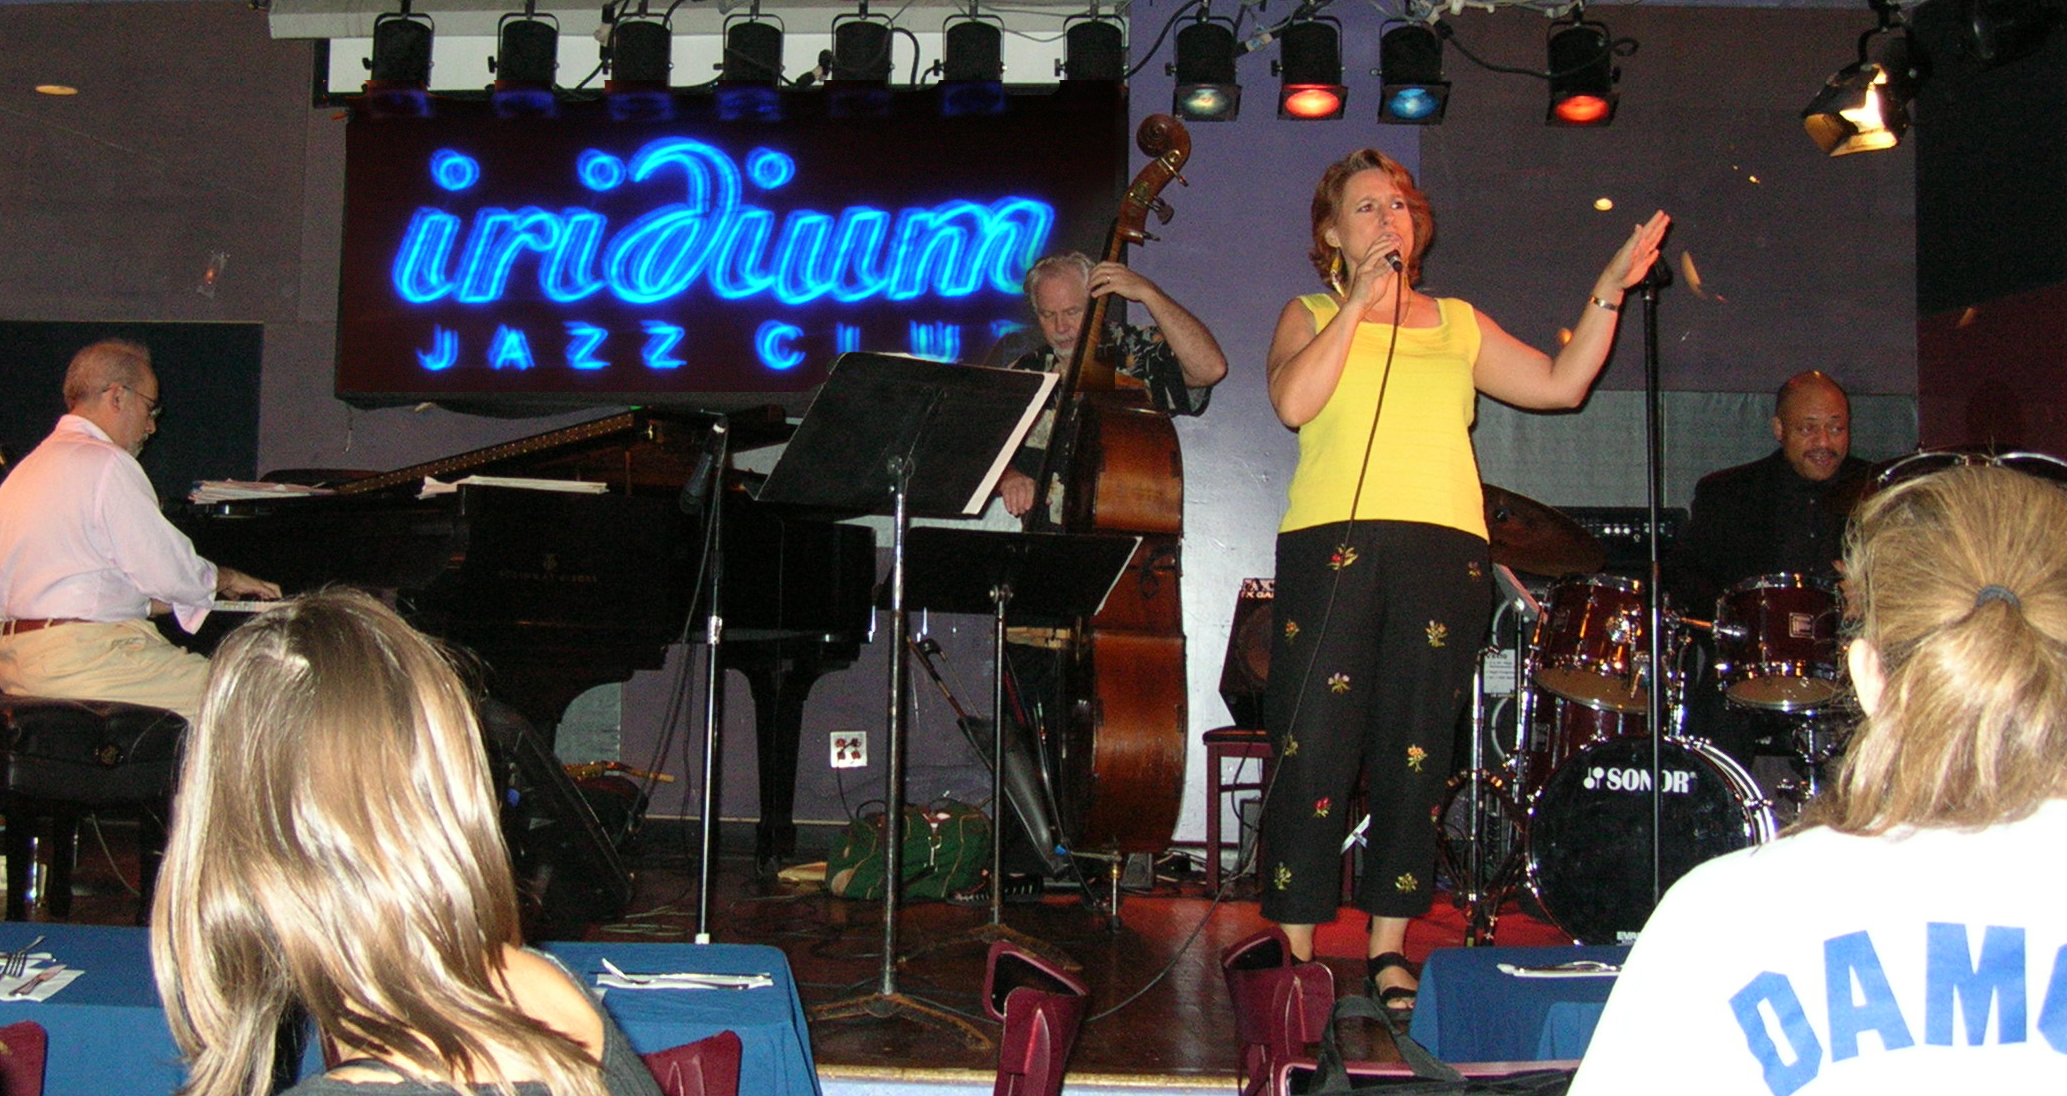 At The Iridium, Times Square, 2006